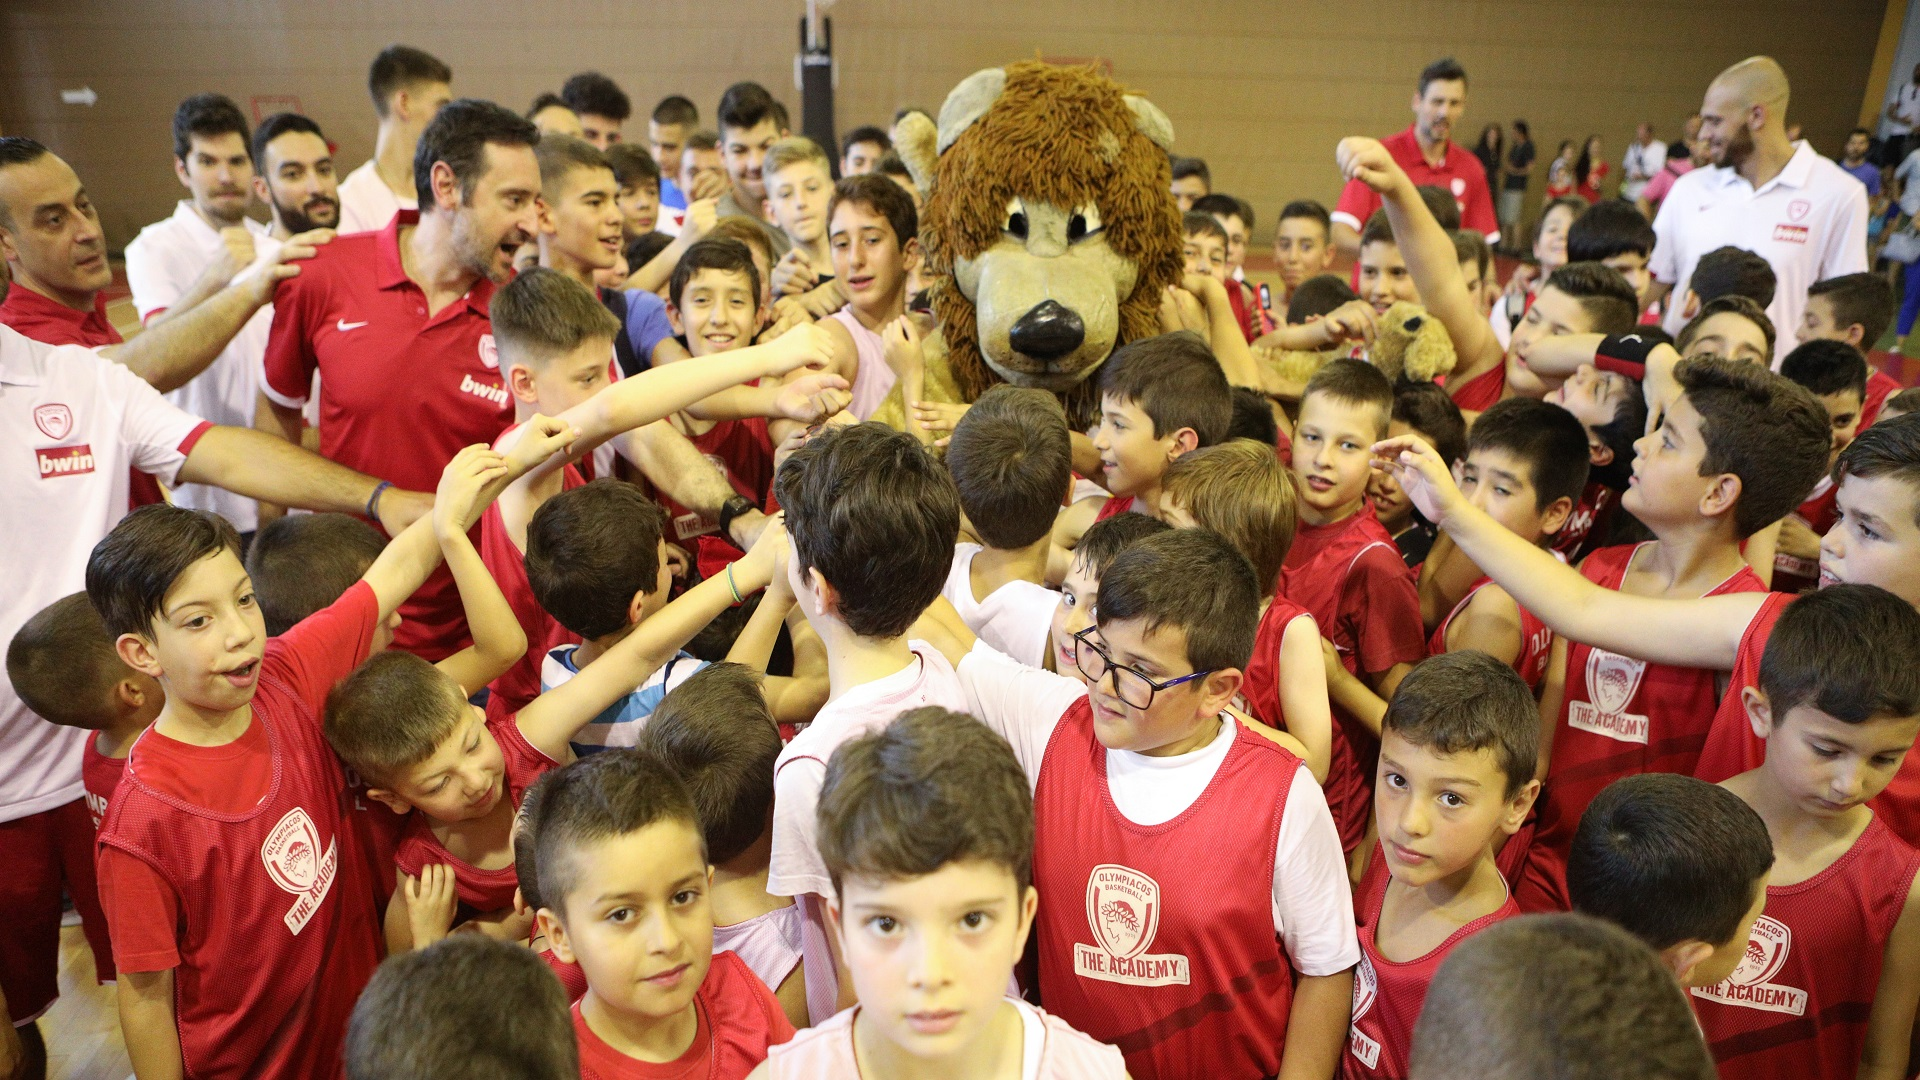 OlympiacosBC The Academy: Η τελετή λήξης (pics + vid)